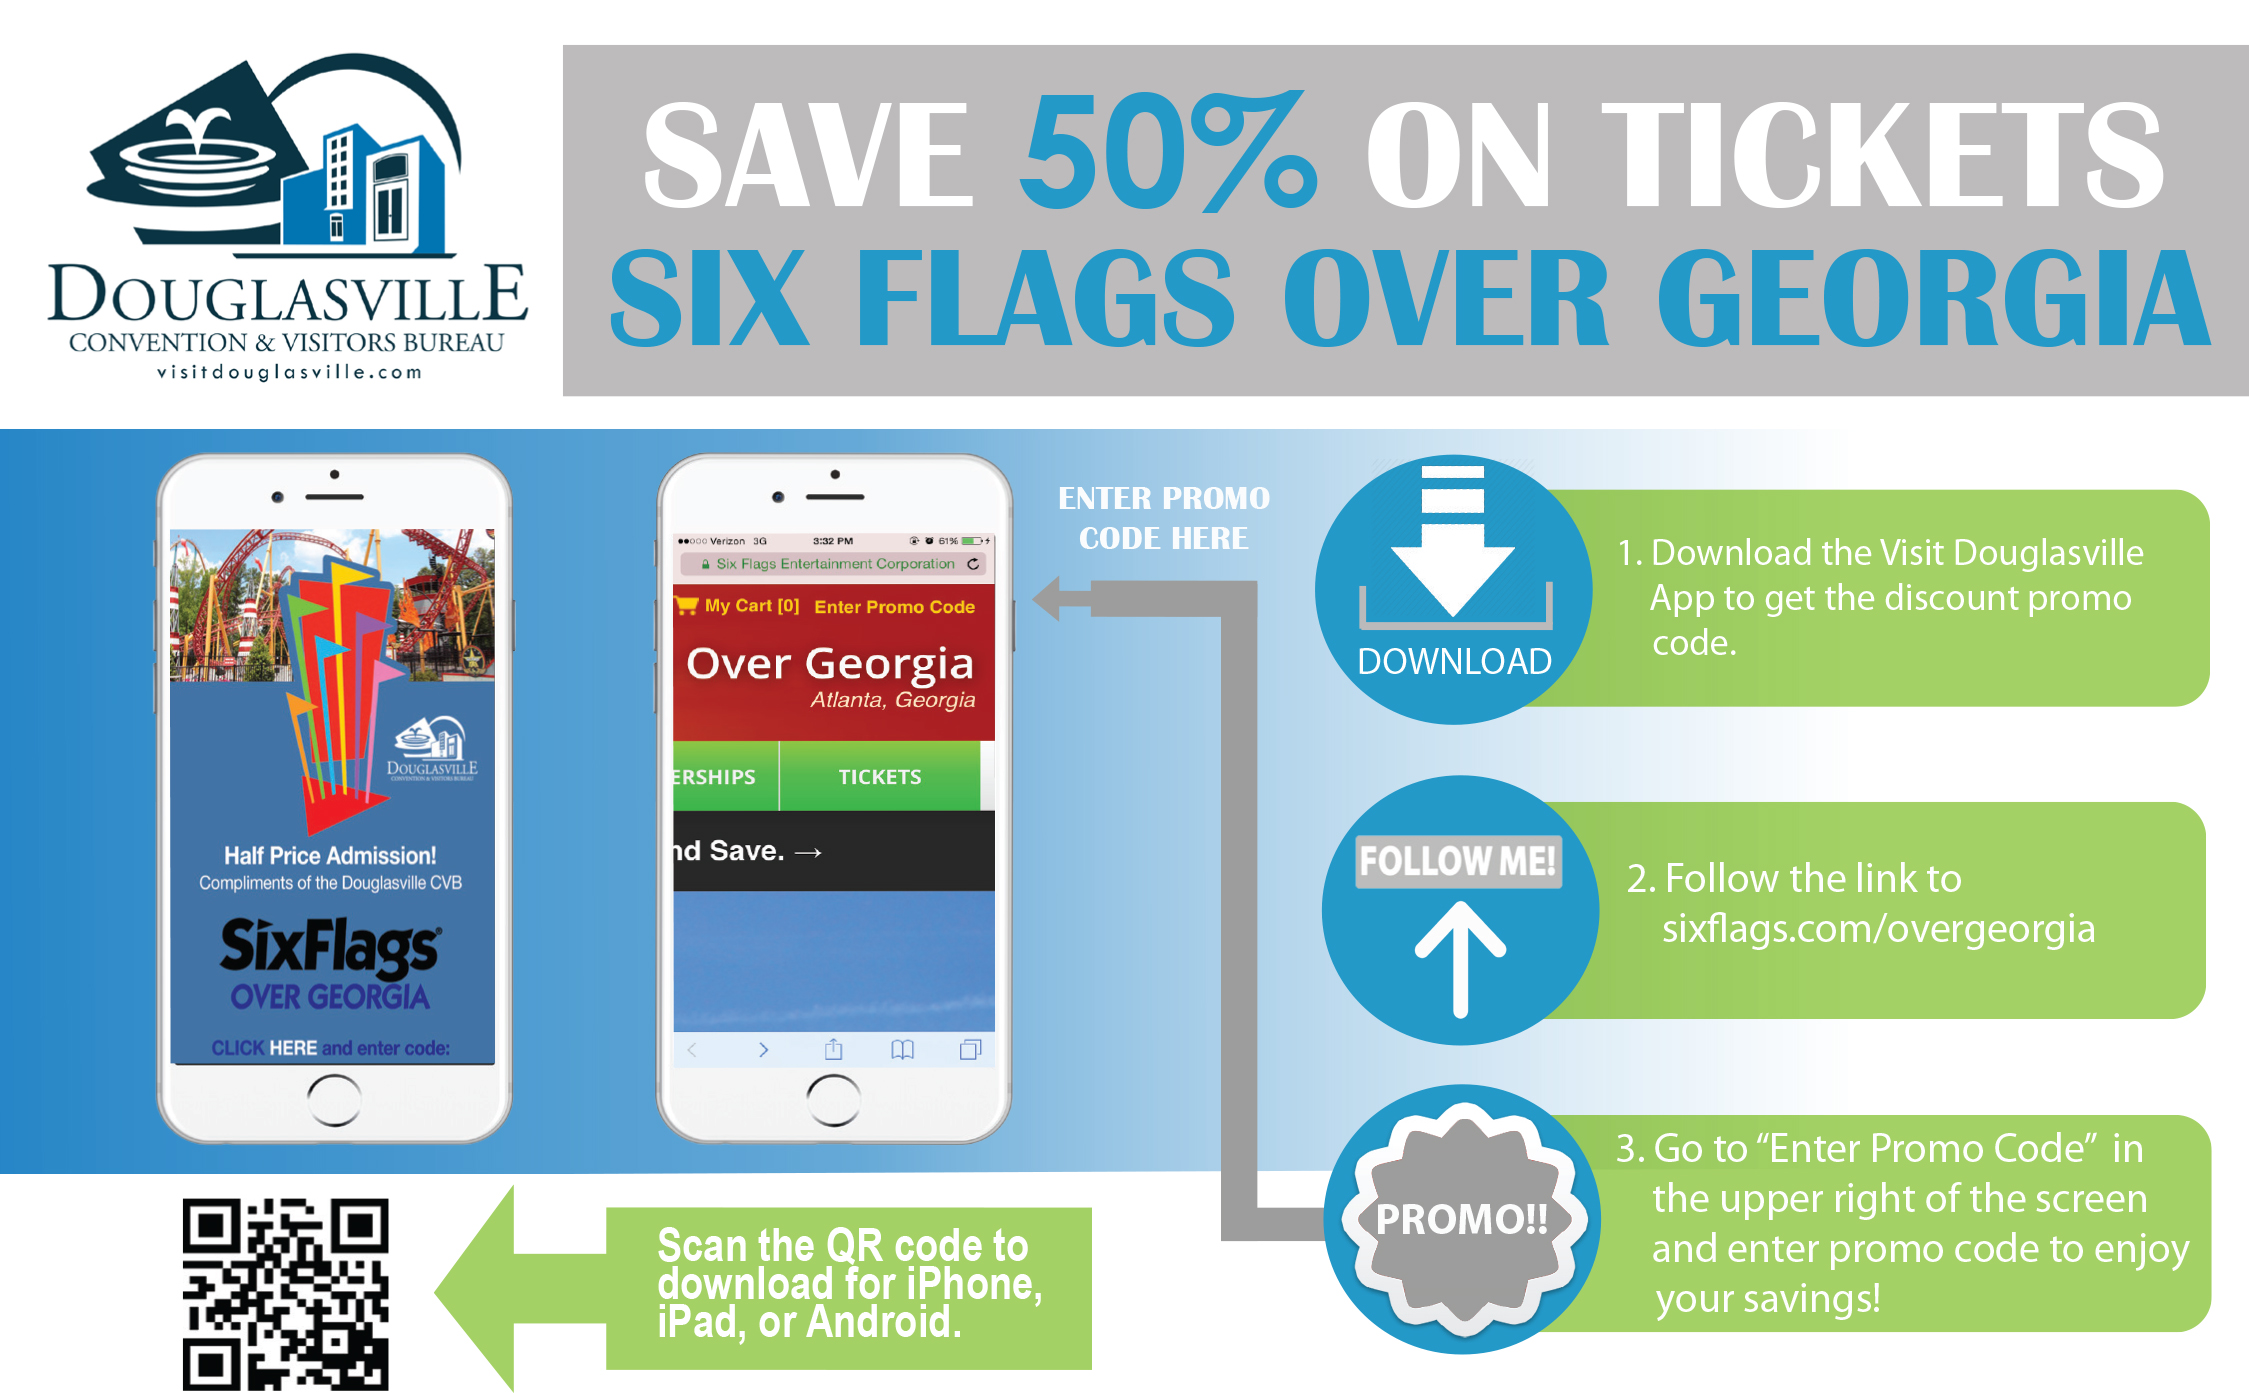 Use Six Flags coupon codes to save on admissions. Look for the Promo Code entry box in the Order Review section of your shopping cart where you can type in your code. Click Submit and watch the discount show up.